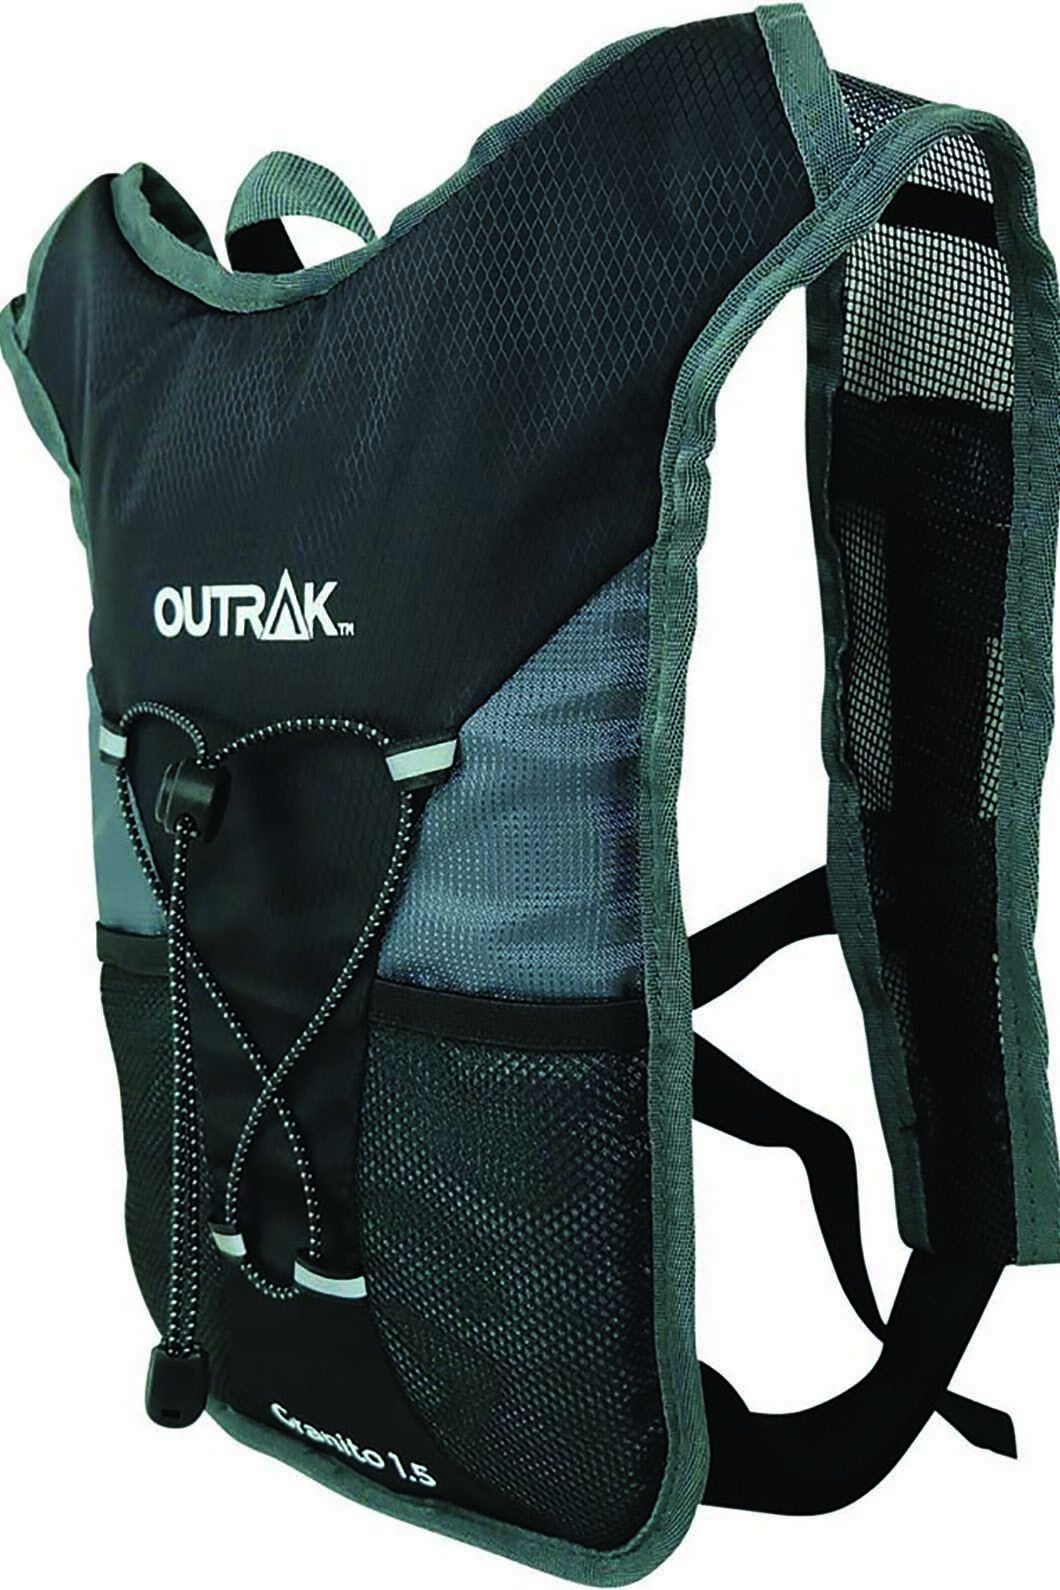 Outrak Granito Hydration Pack 1.5 L, None, hi-res